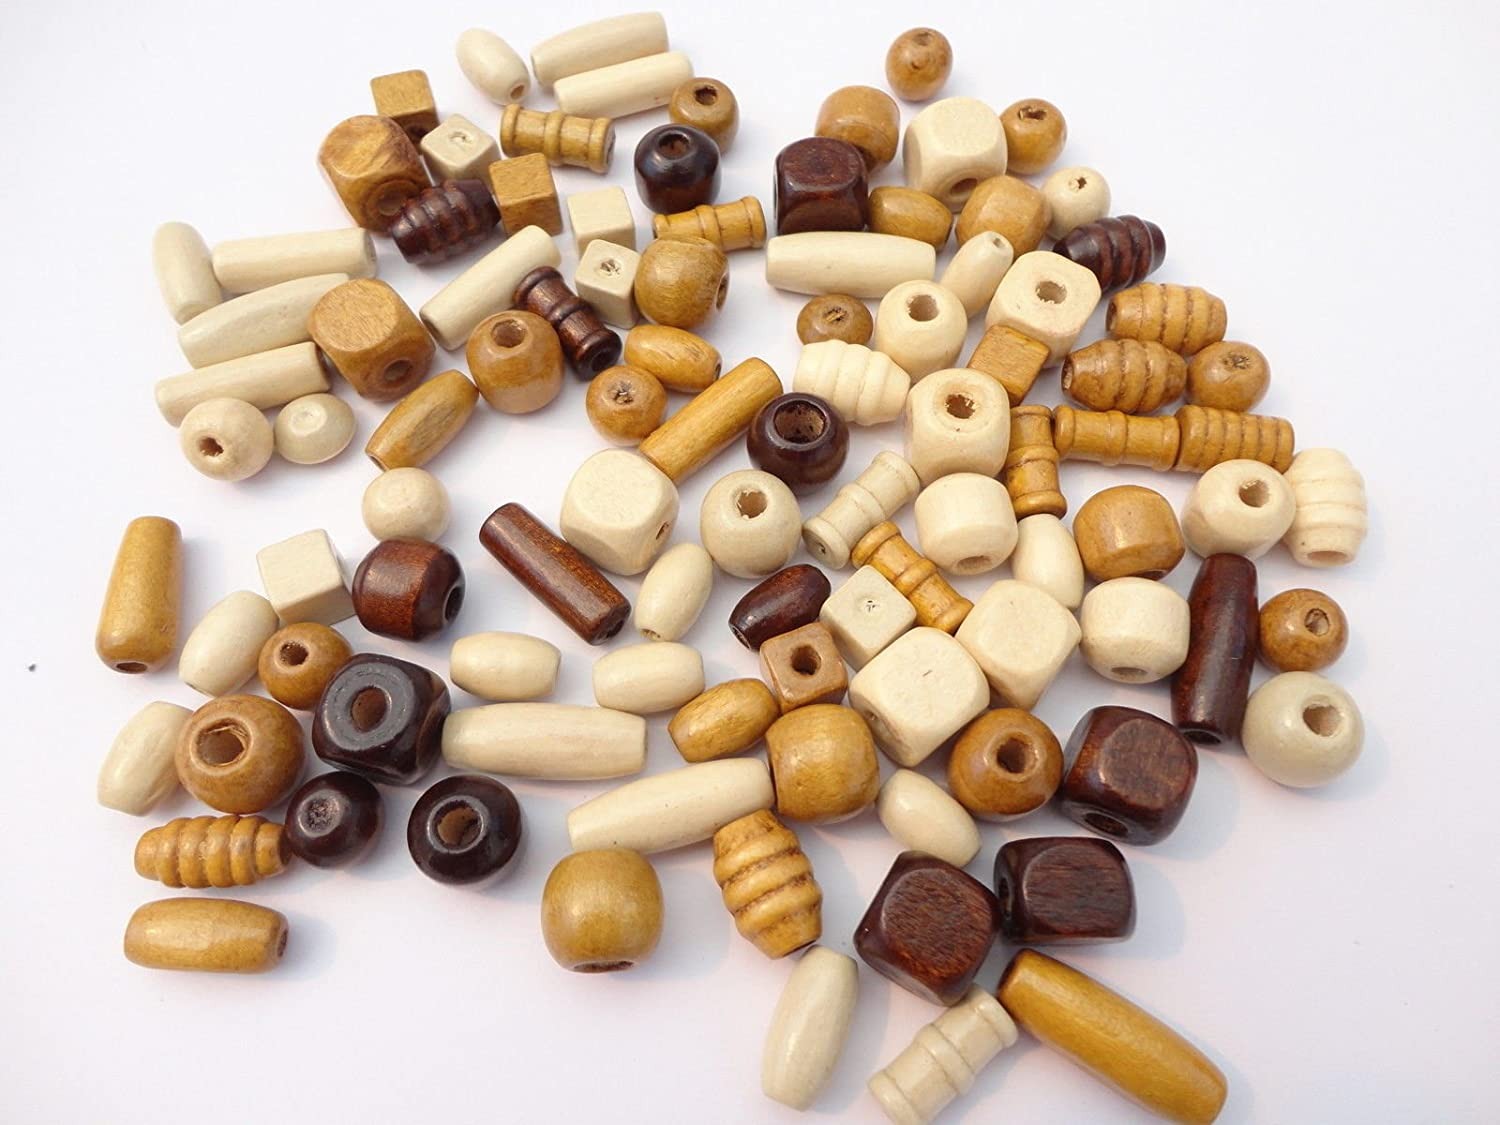 100 Or 200 Wooden Mixed Size /& Shape Wood Beads Craft Jewellery Dolls Hair Braiding Pack Size 100 Beads